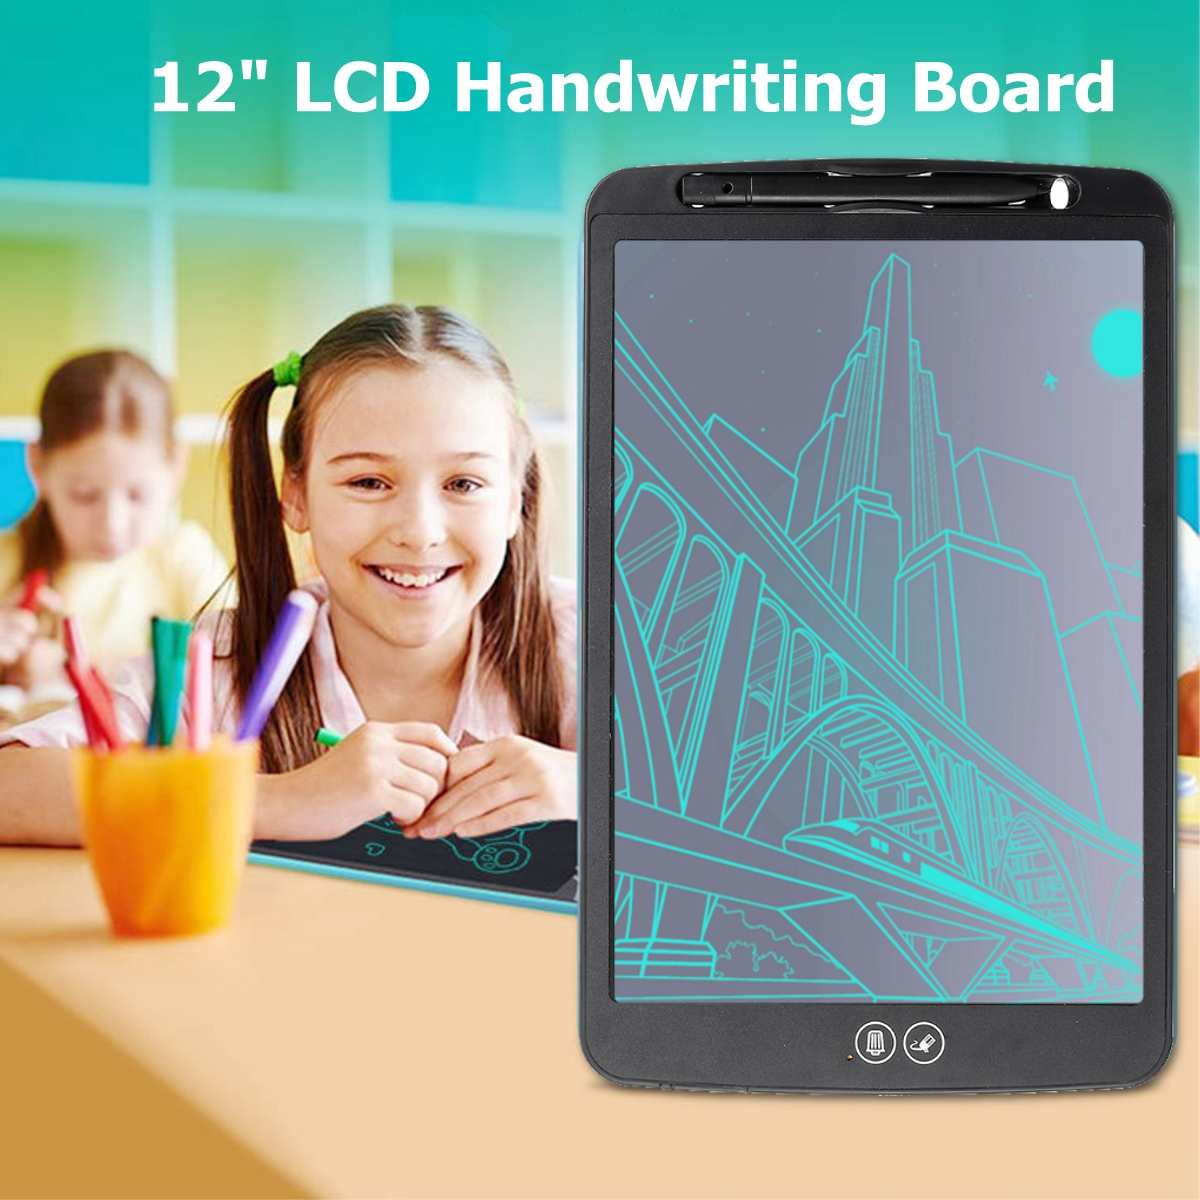 Partially Erasing Children's Writing Thick Pen Highlighting Electronic DIgital Tablets 12 inch LCD Handwriting Board